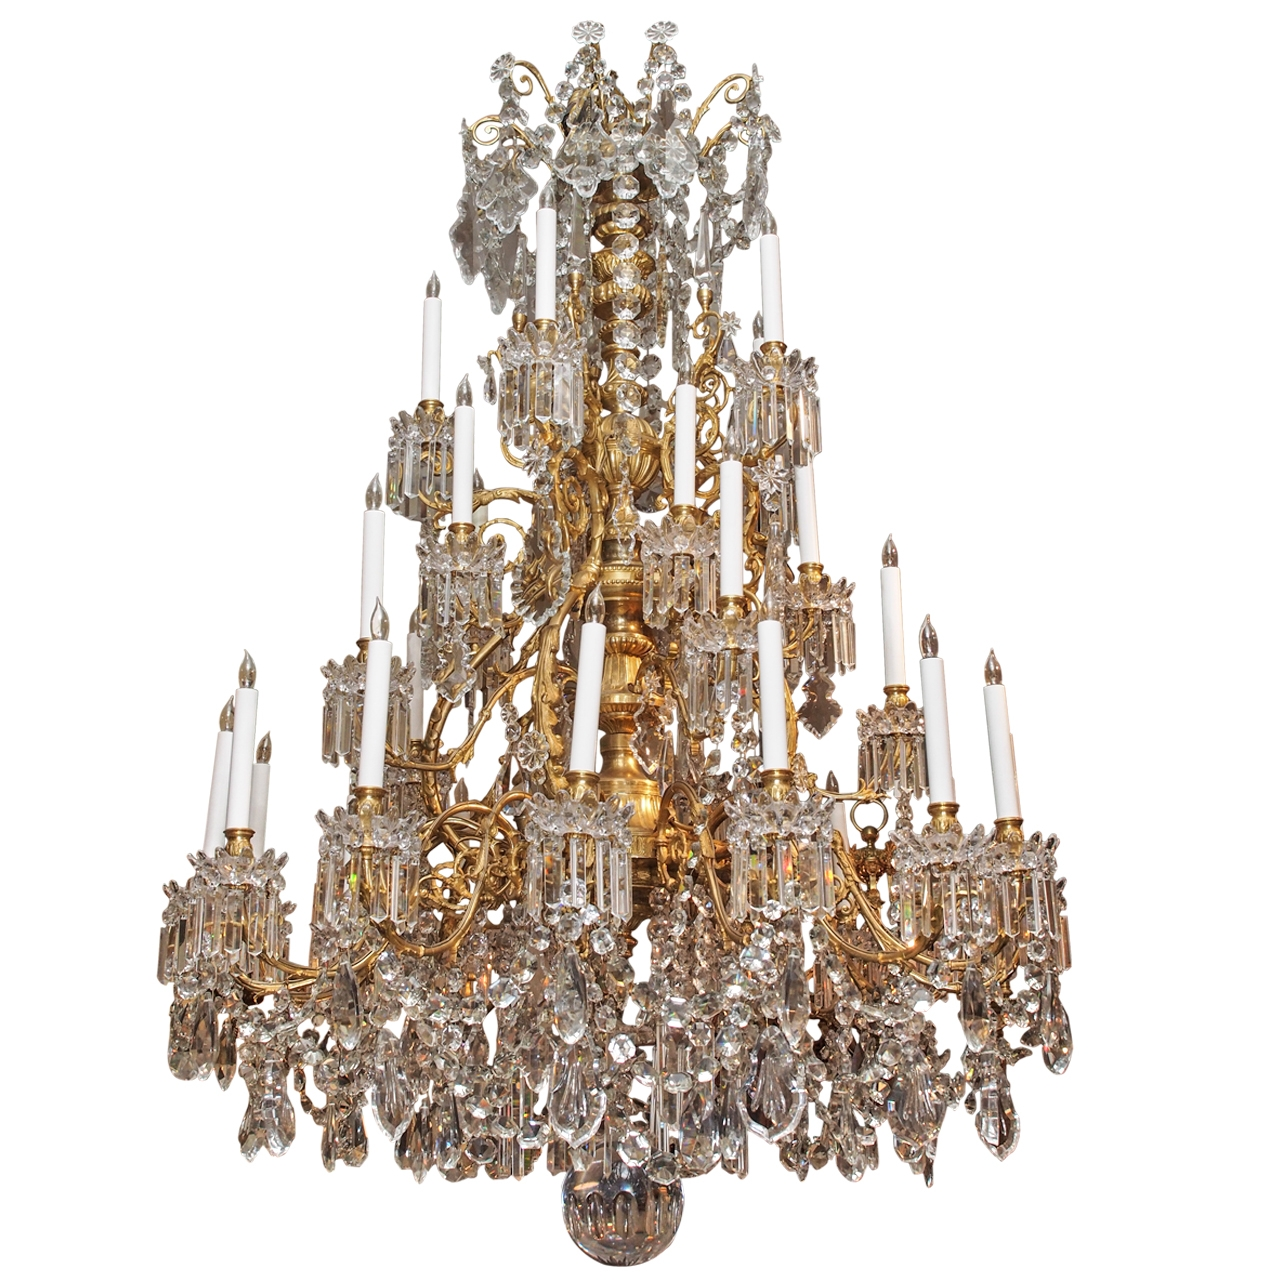 Magnificent Antique French Baccarat Crystal Chandelier Circa 1850 With Vintage Chandelier (Image 7 of 15)